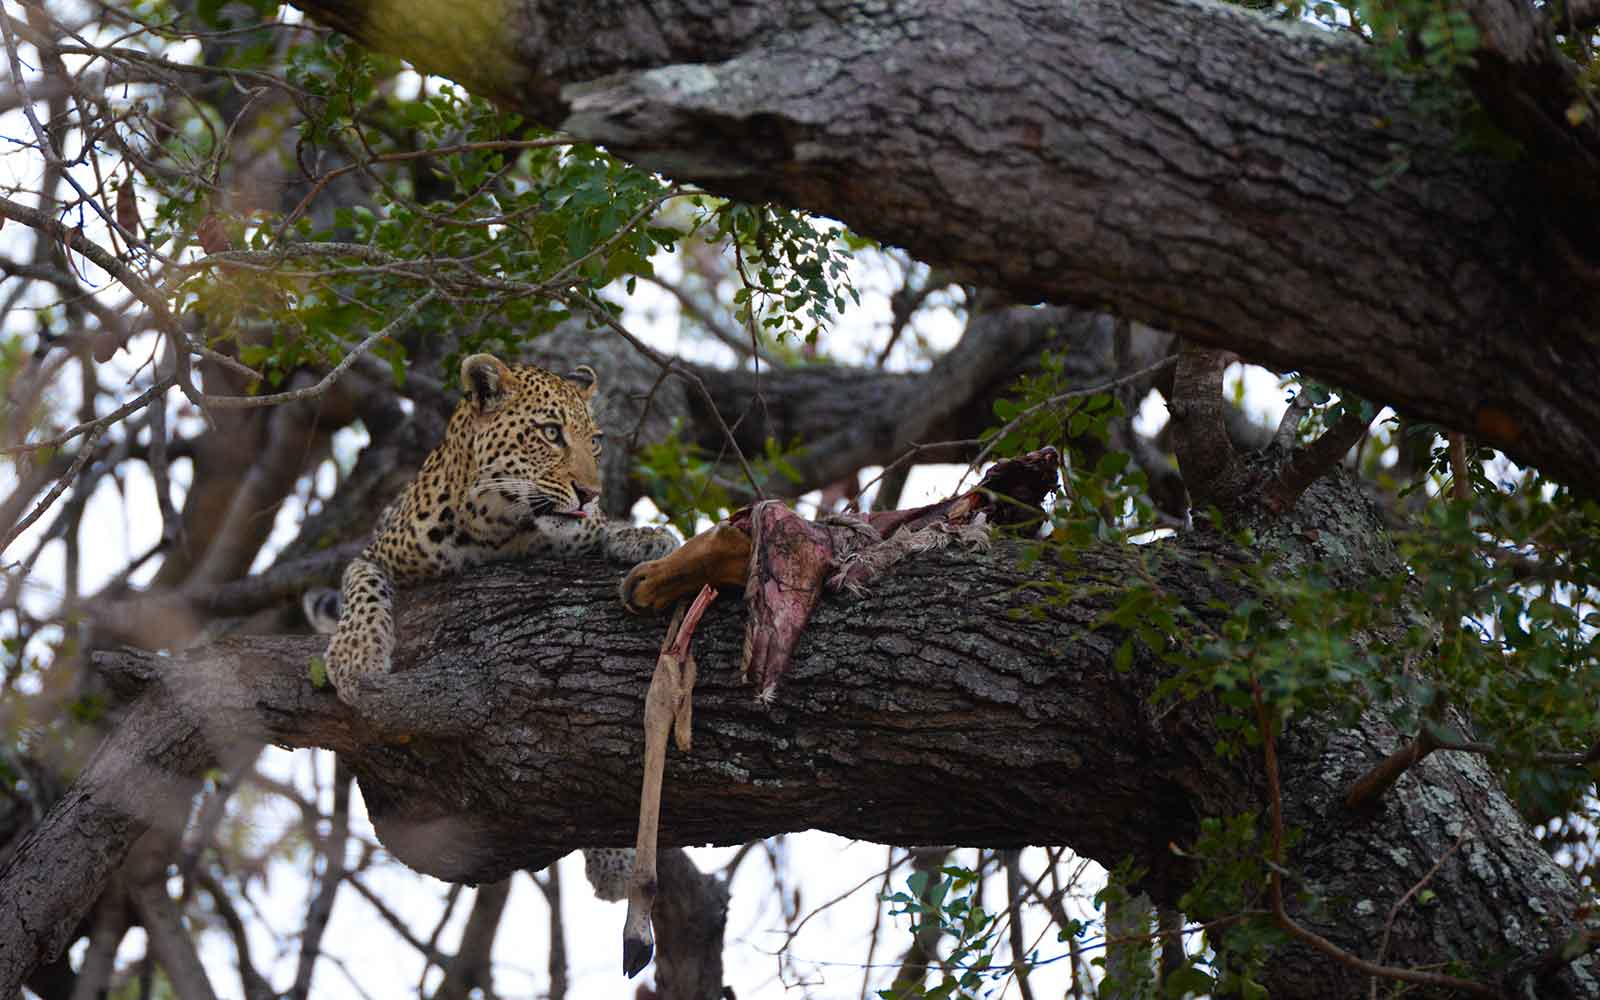 Leopard with Kill - Image : Kevin MacLaughlin